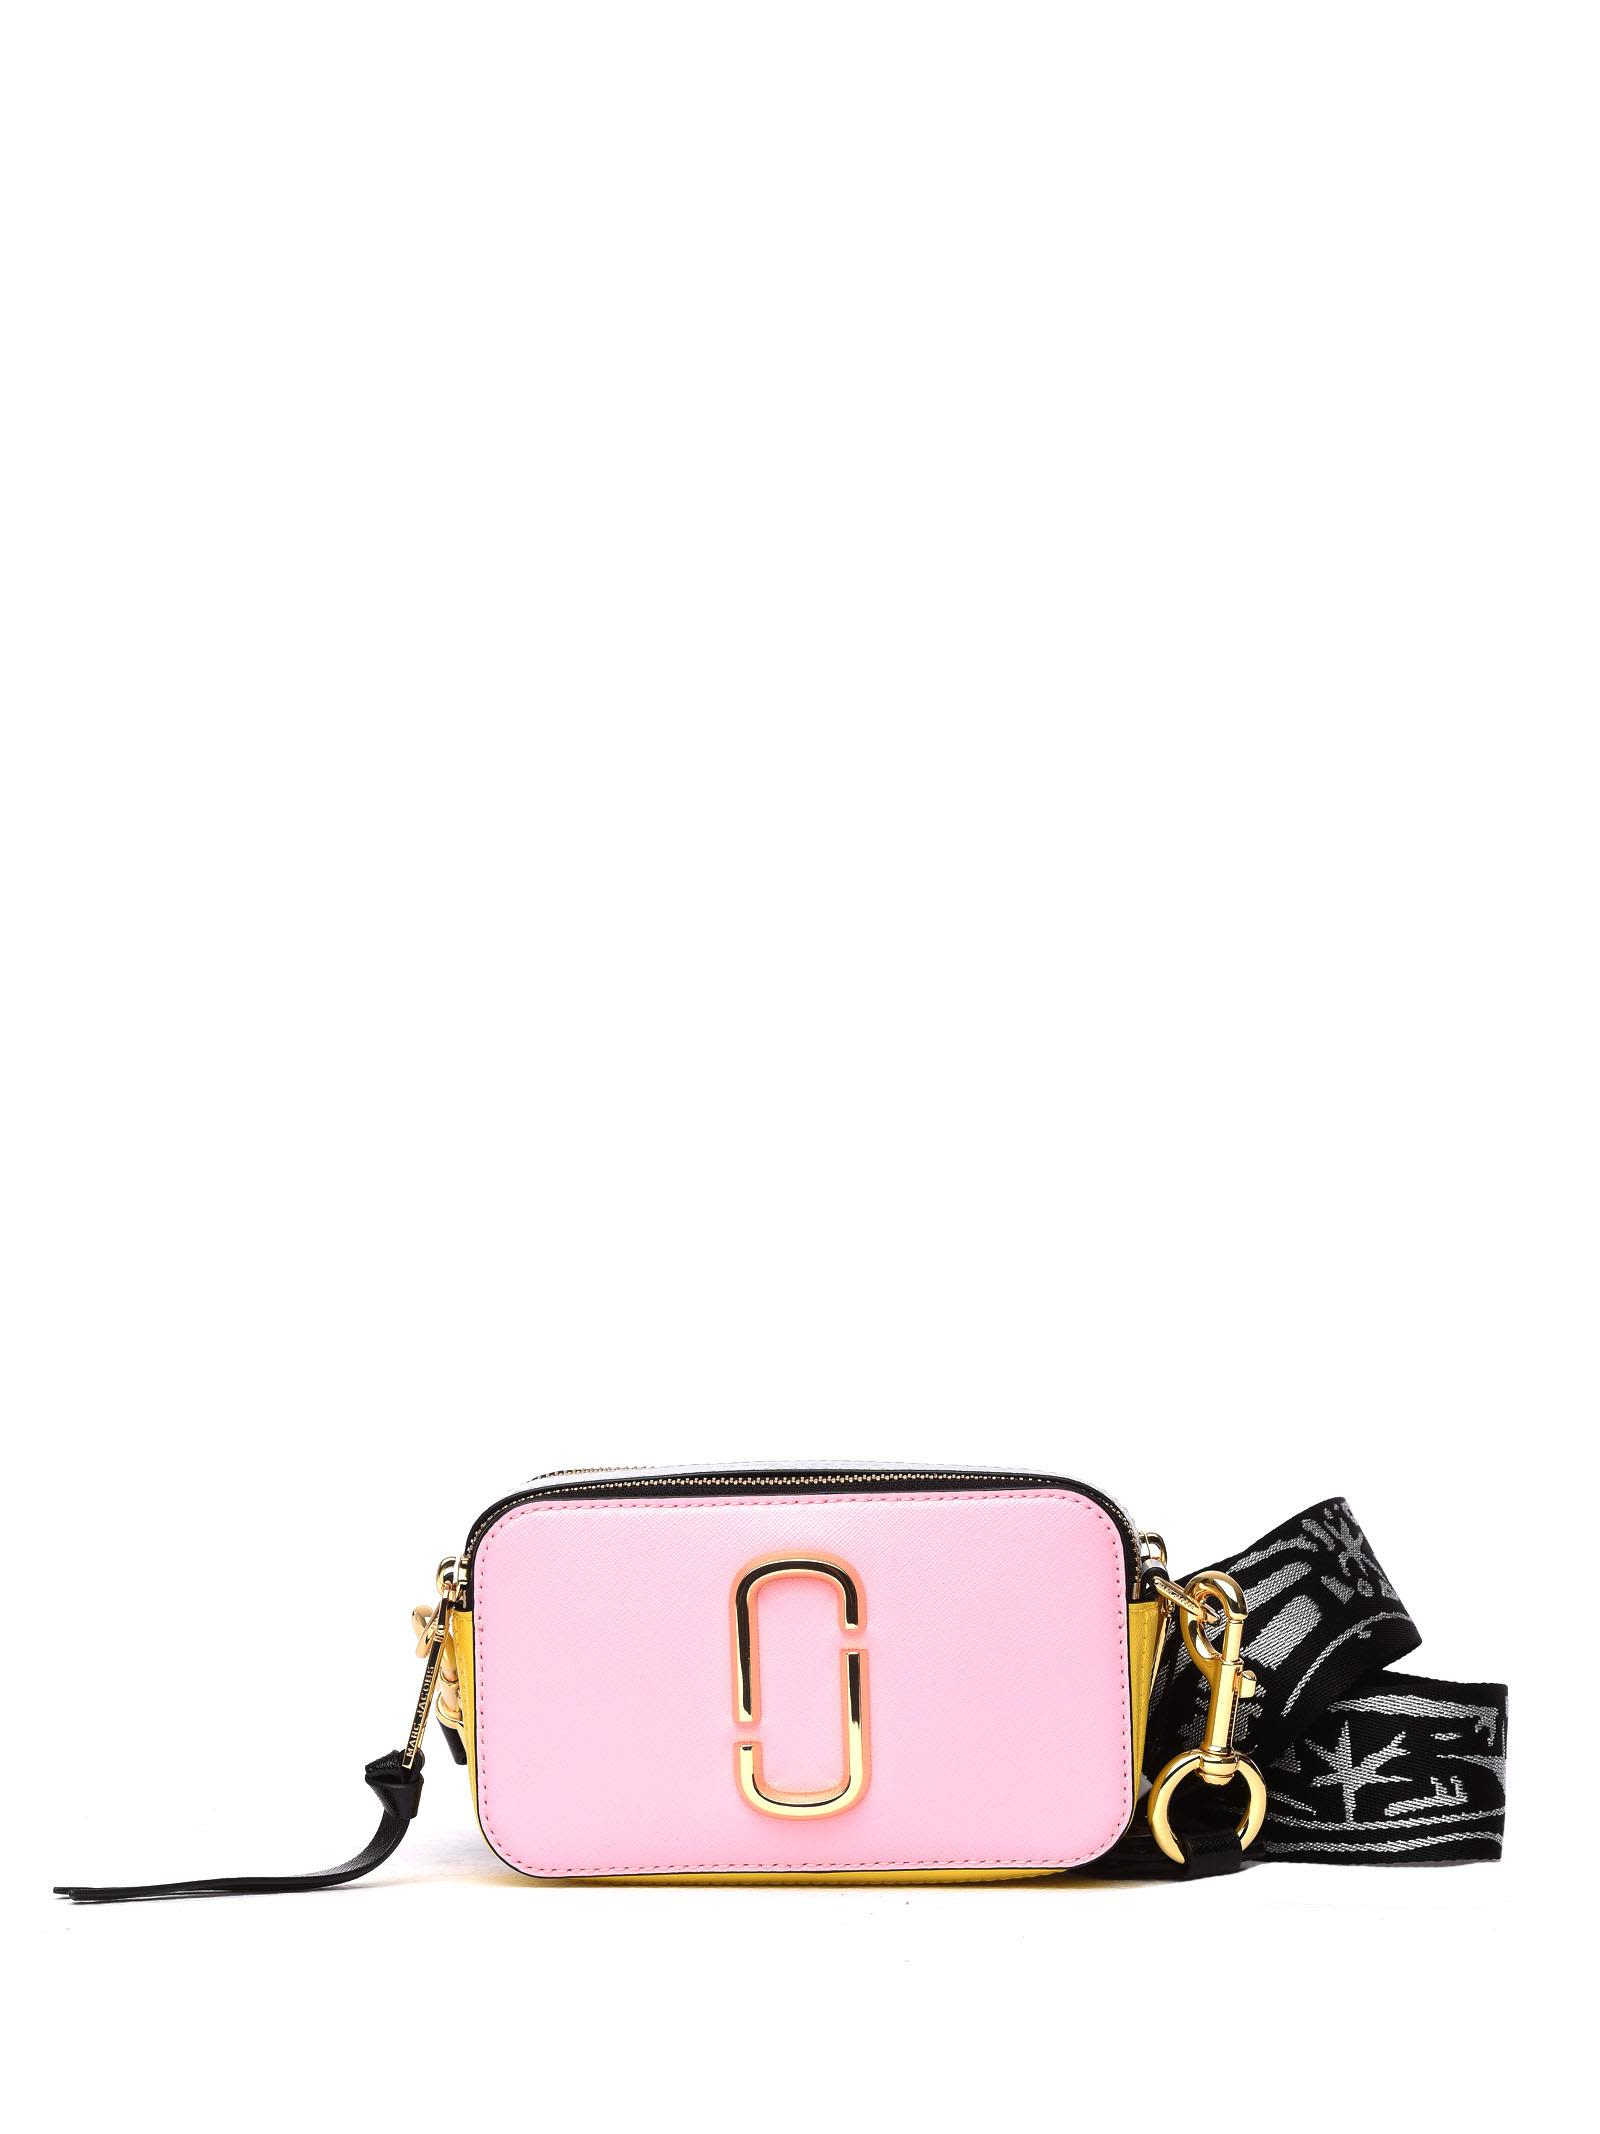 5ebdb646256c Marc Jacobs Snapshot Pink Bag In Baby Pink Multi